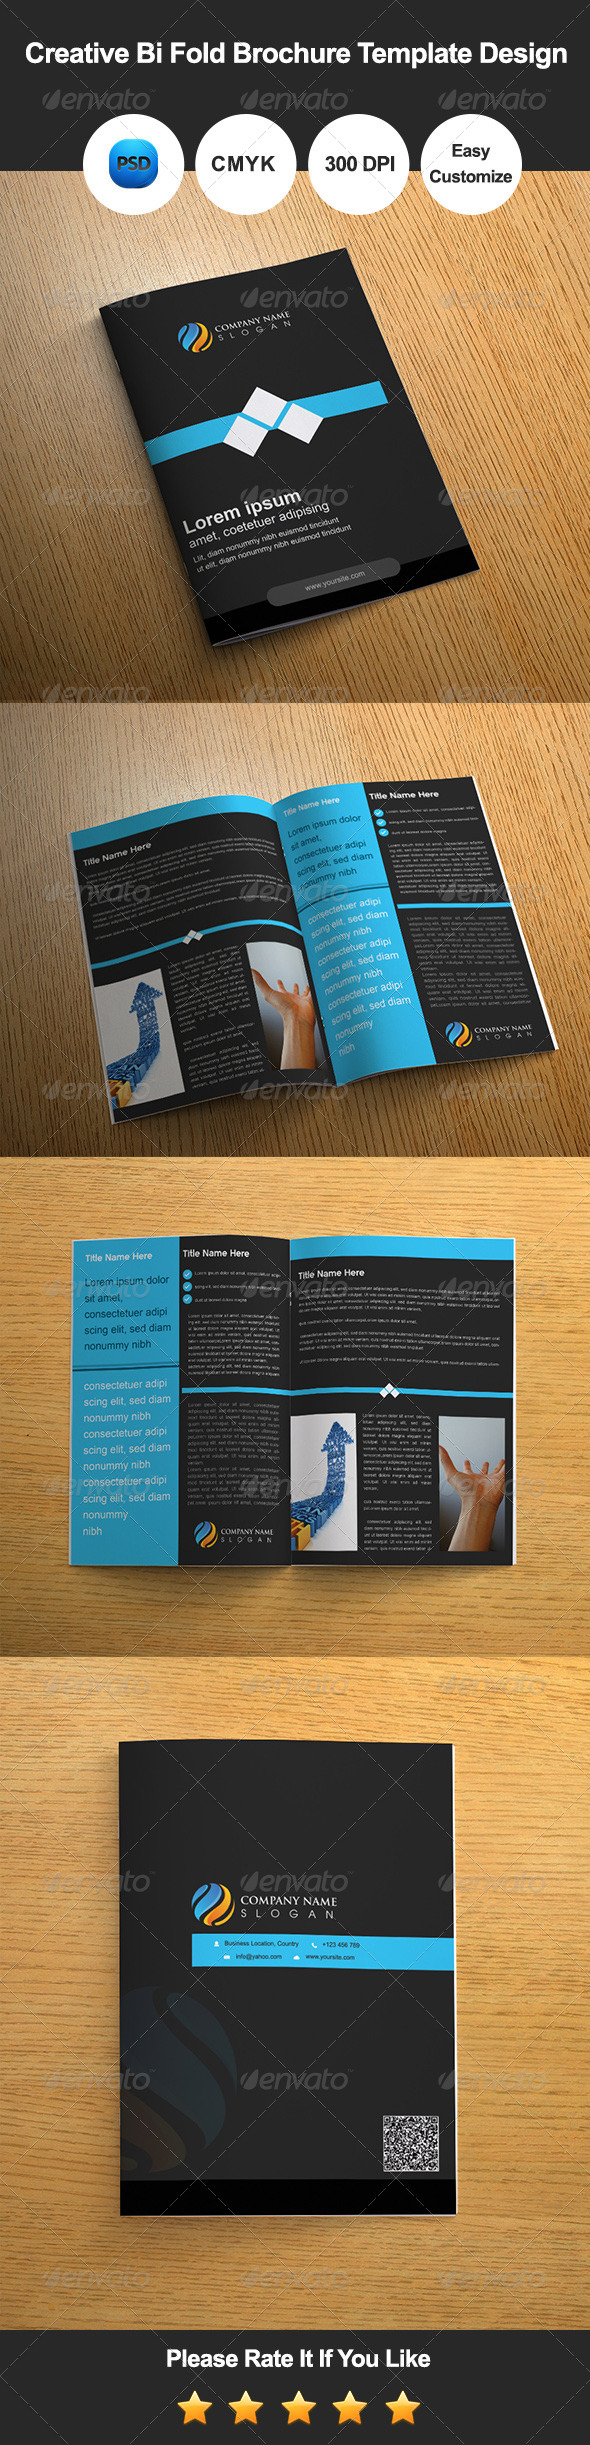 GraphicRiver Creative Bi Fold Brochure Template Design 7385074